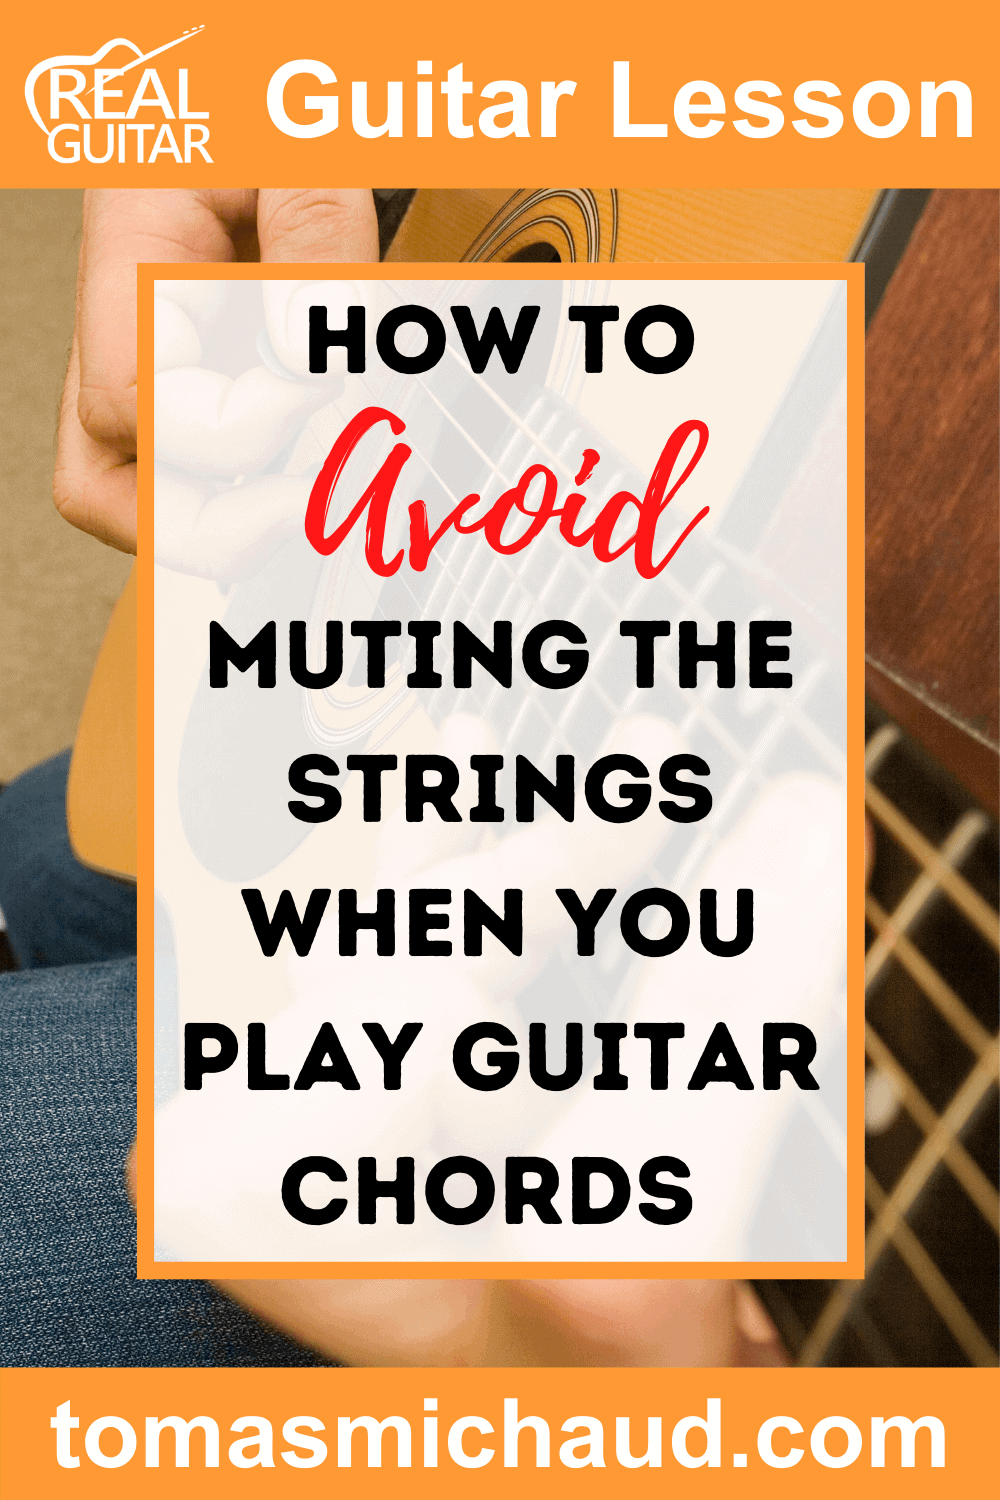 How To Avoid Muting The Stings When You Play Guitar Chords